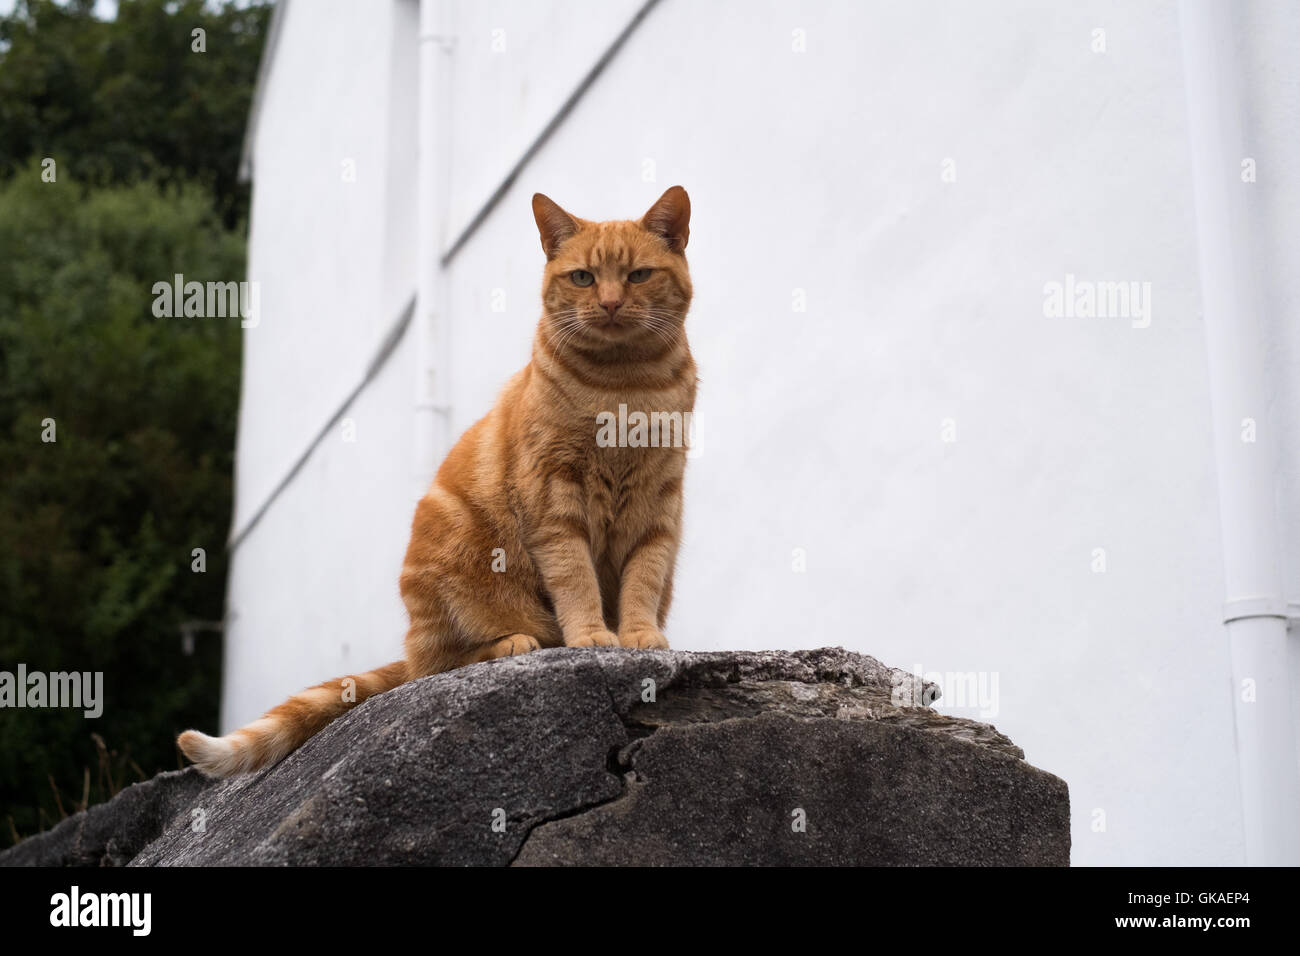 A ginger tom cat sat up on a wall in the late evening - Falmouth, Cornwall 19th August 2016 - Stock Image